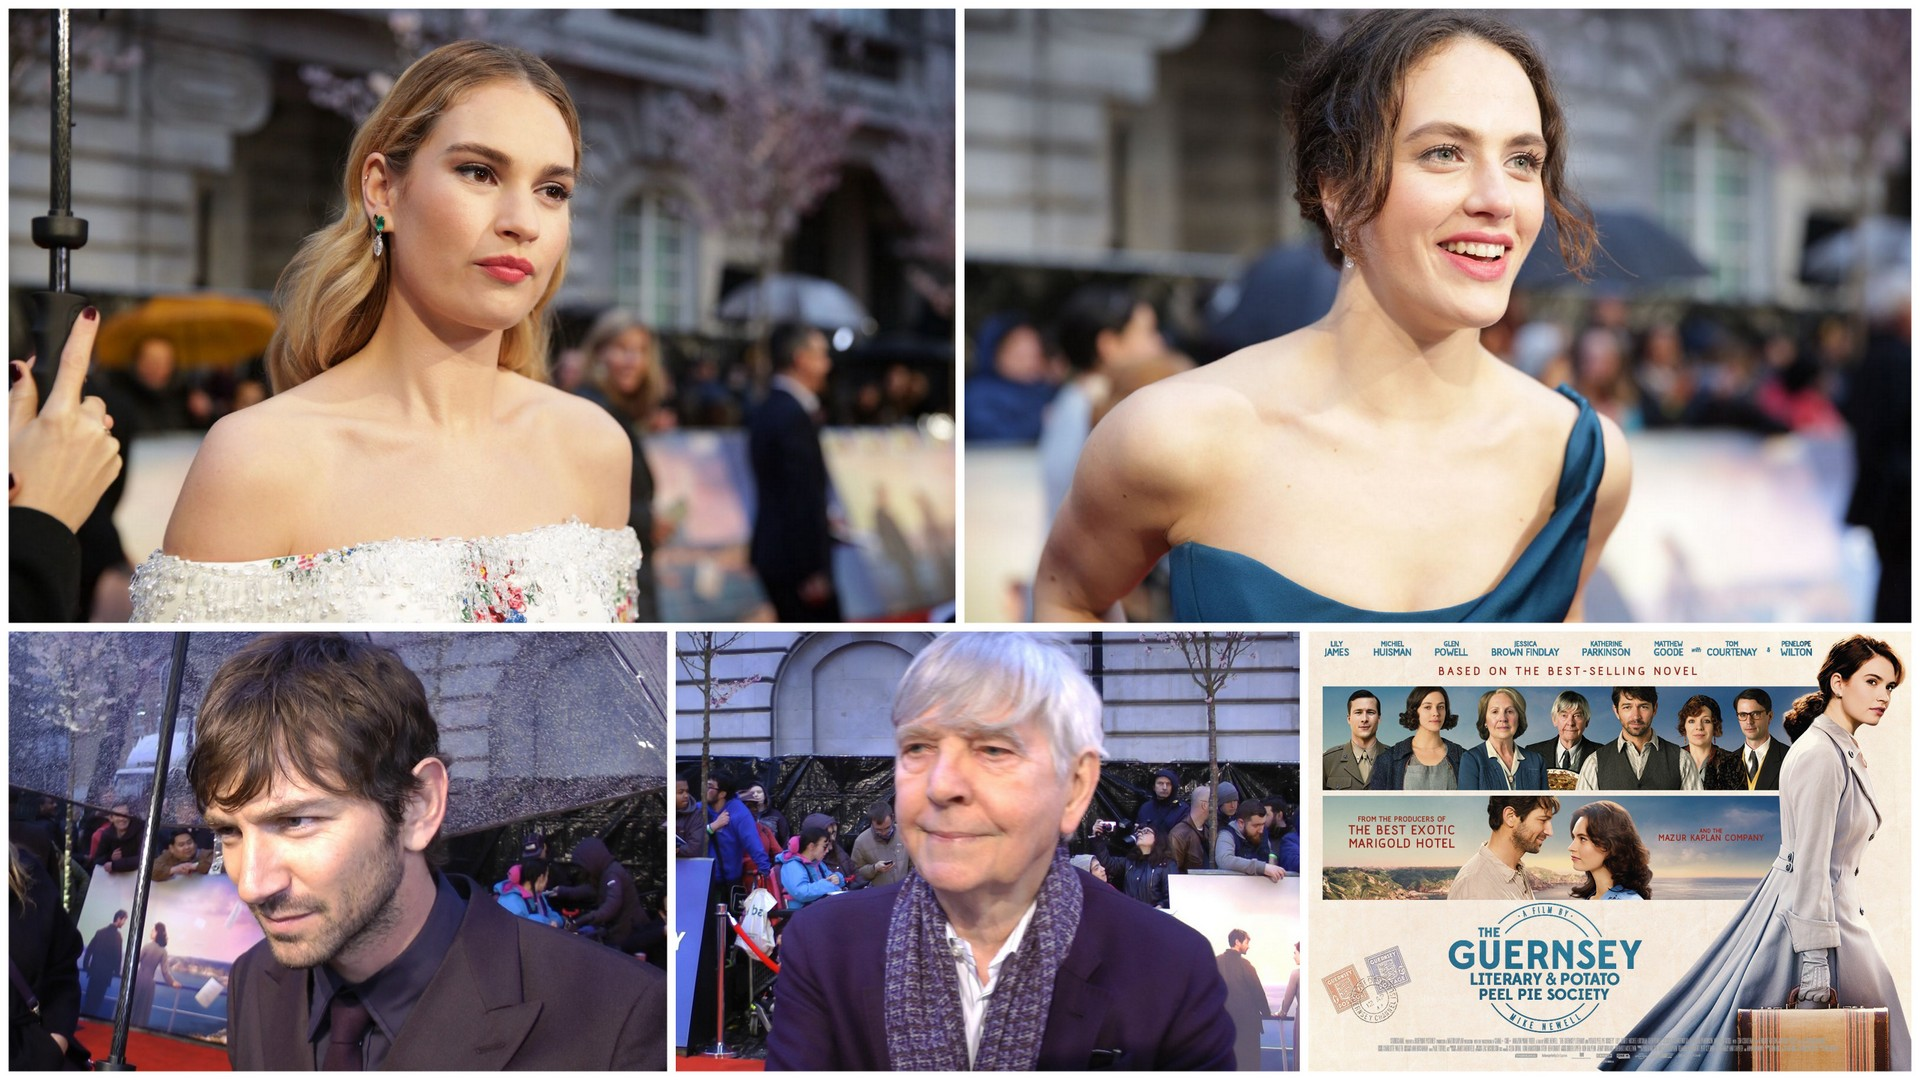 The Guernsey Literary and Potato Peel Pie Society world premiere